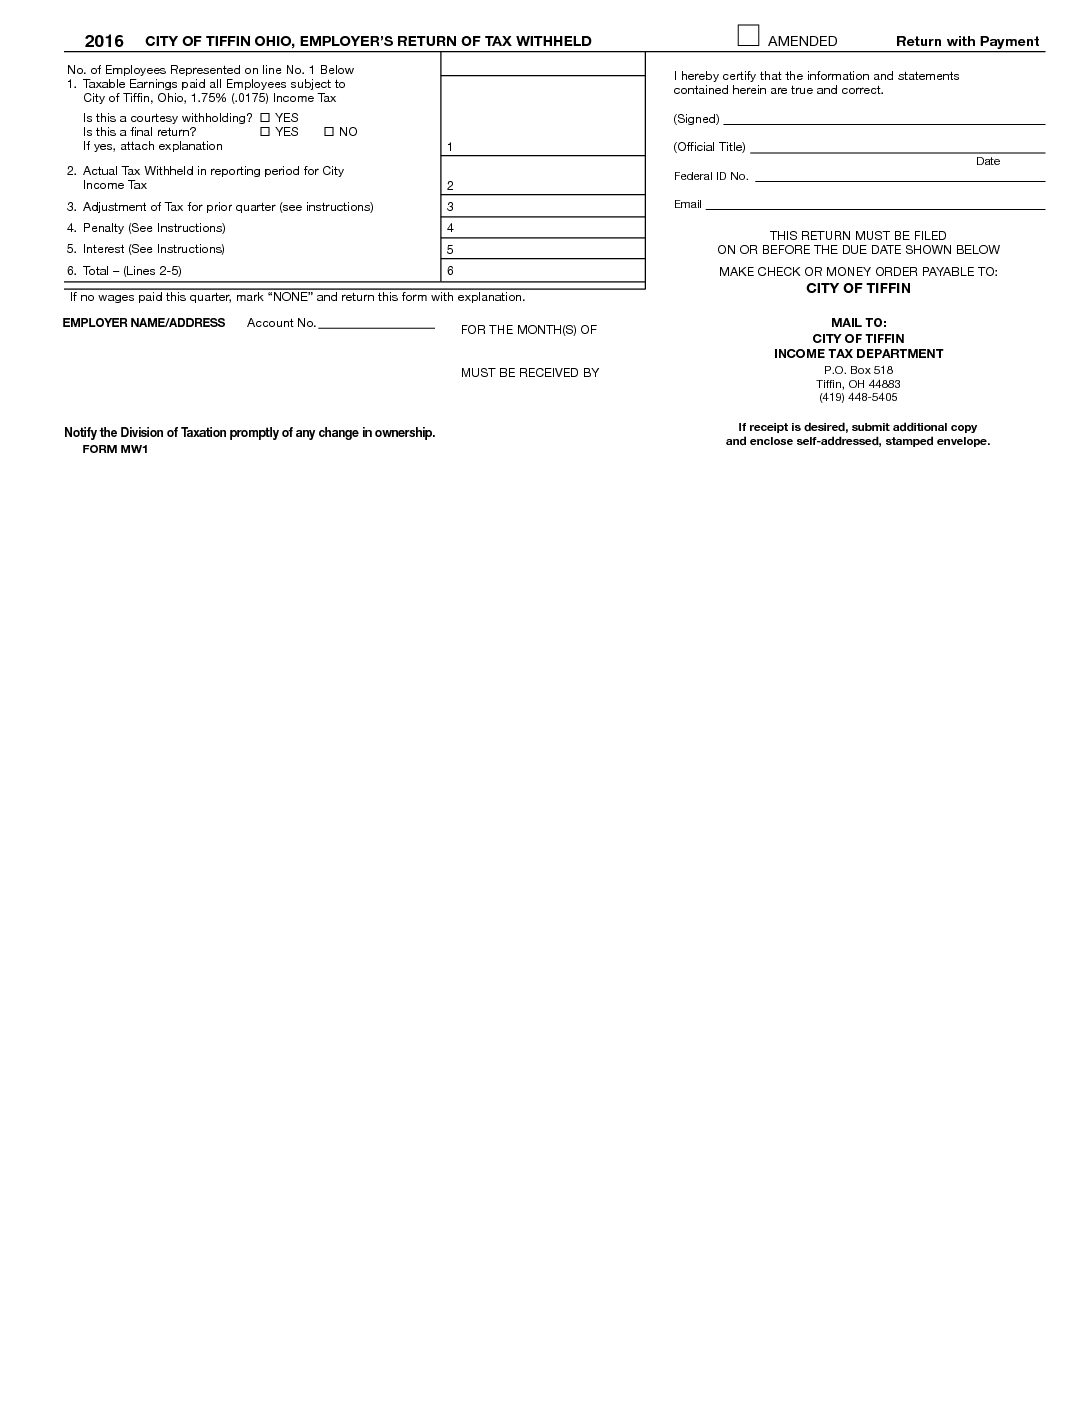 The Estimated Tax Worksheet